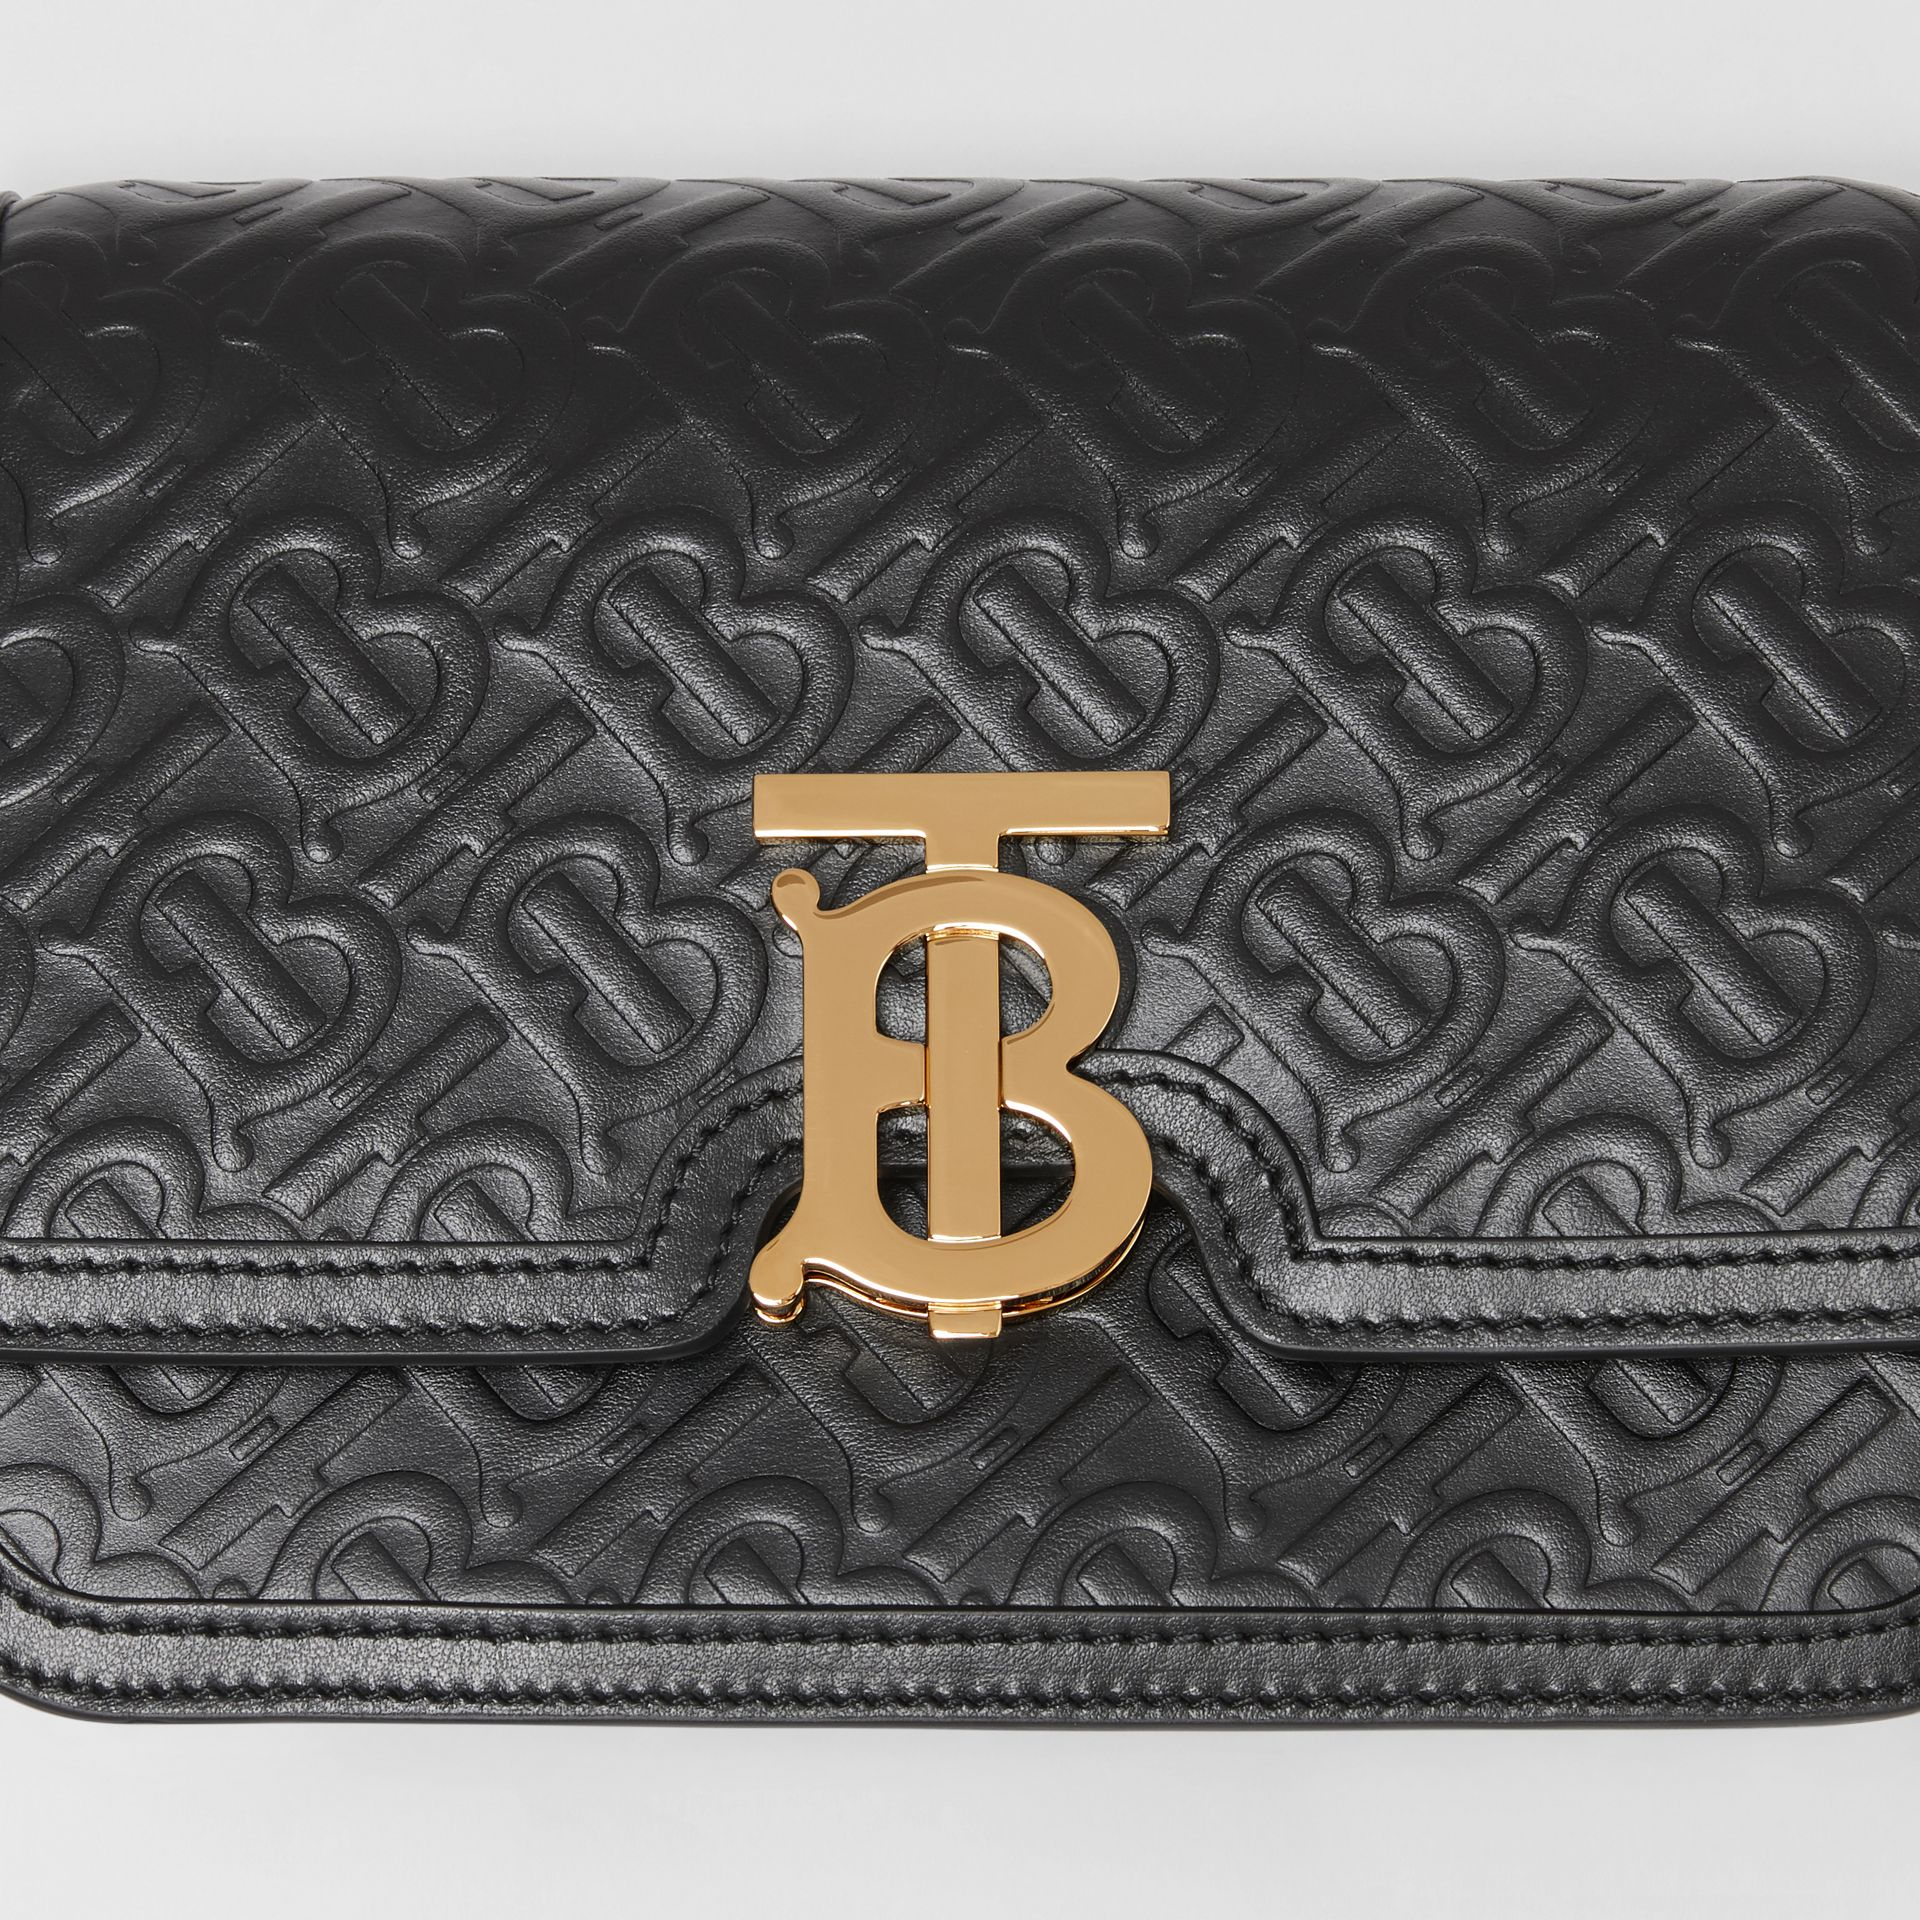 Small Monogram Leather TB Bag in Black - Women | Burberry - gallery image 1